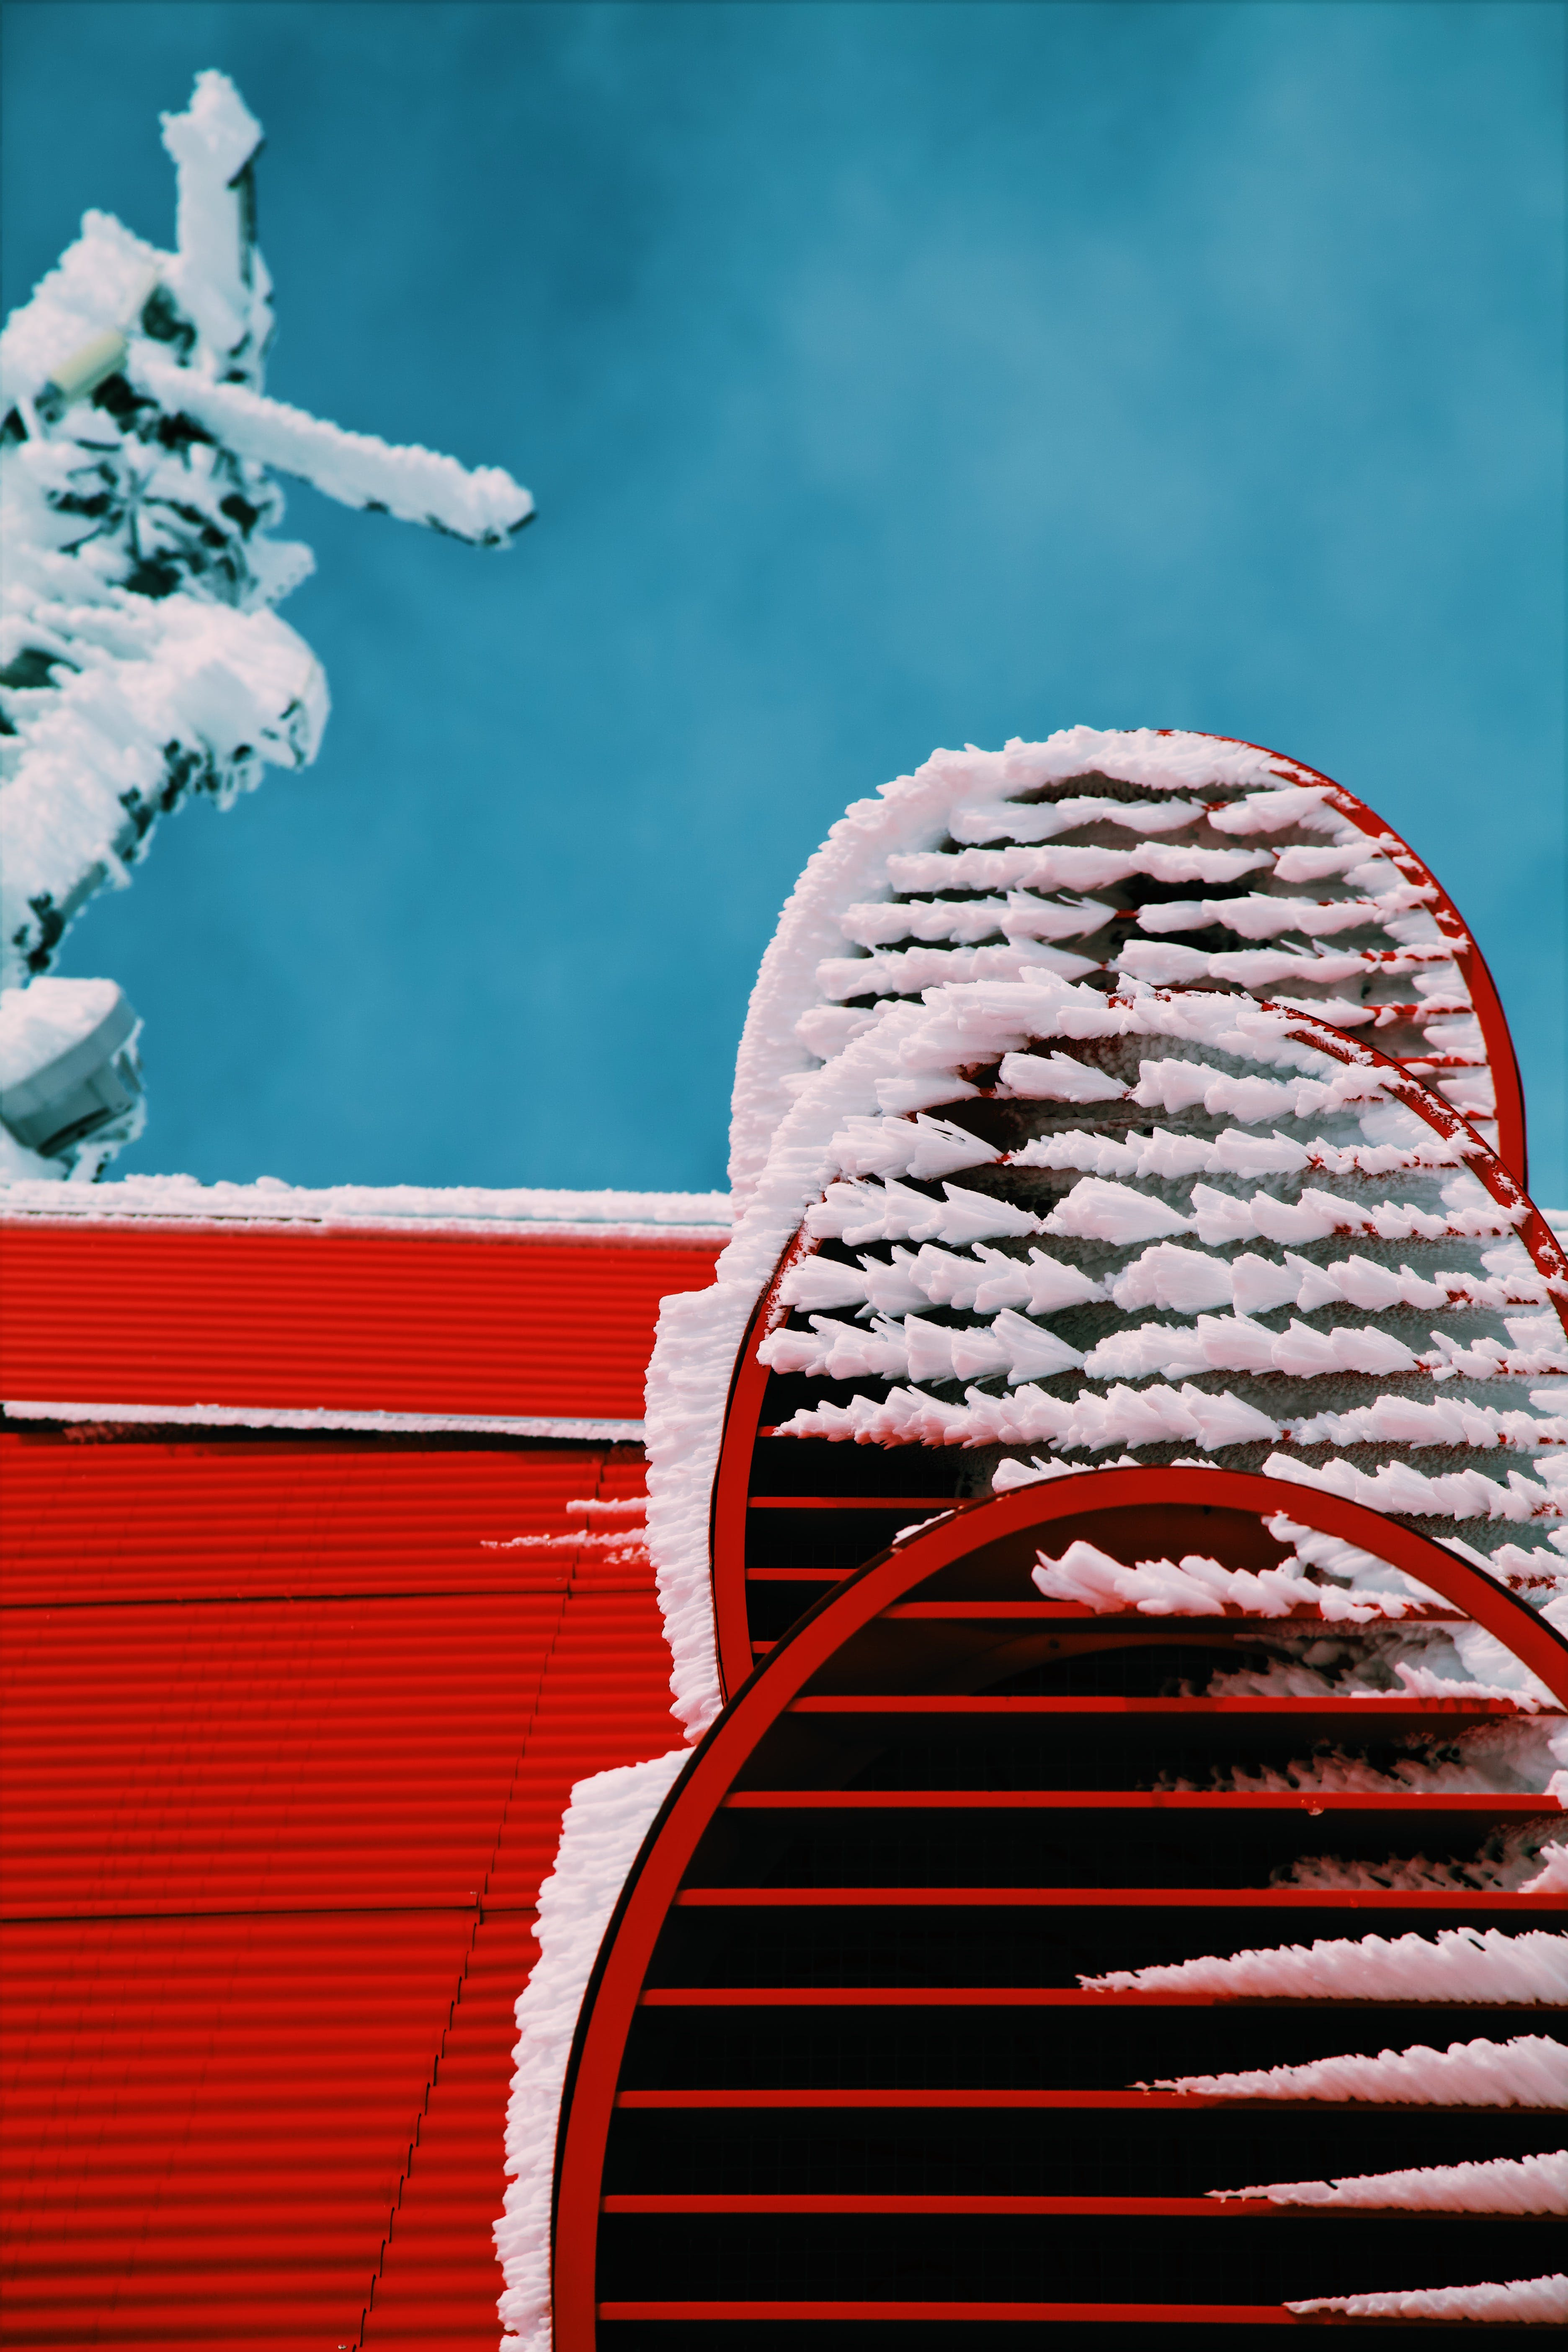 Snows on Red Roof Closeup Photo